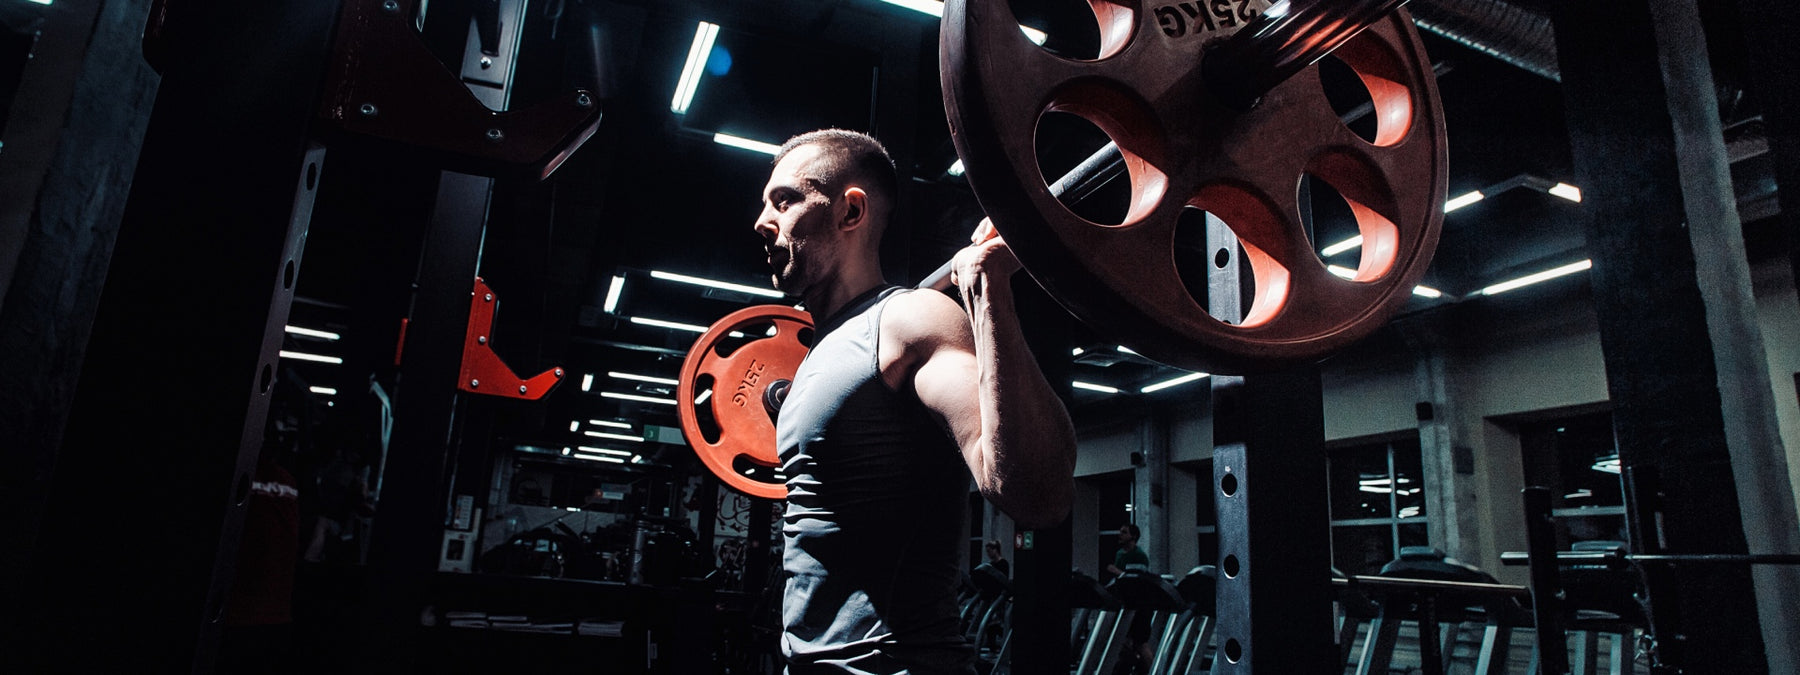 5 Squat Variations For Explosive Muscle Growth